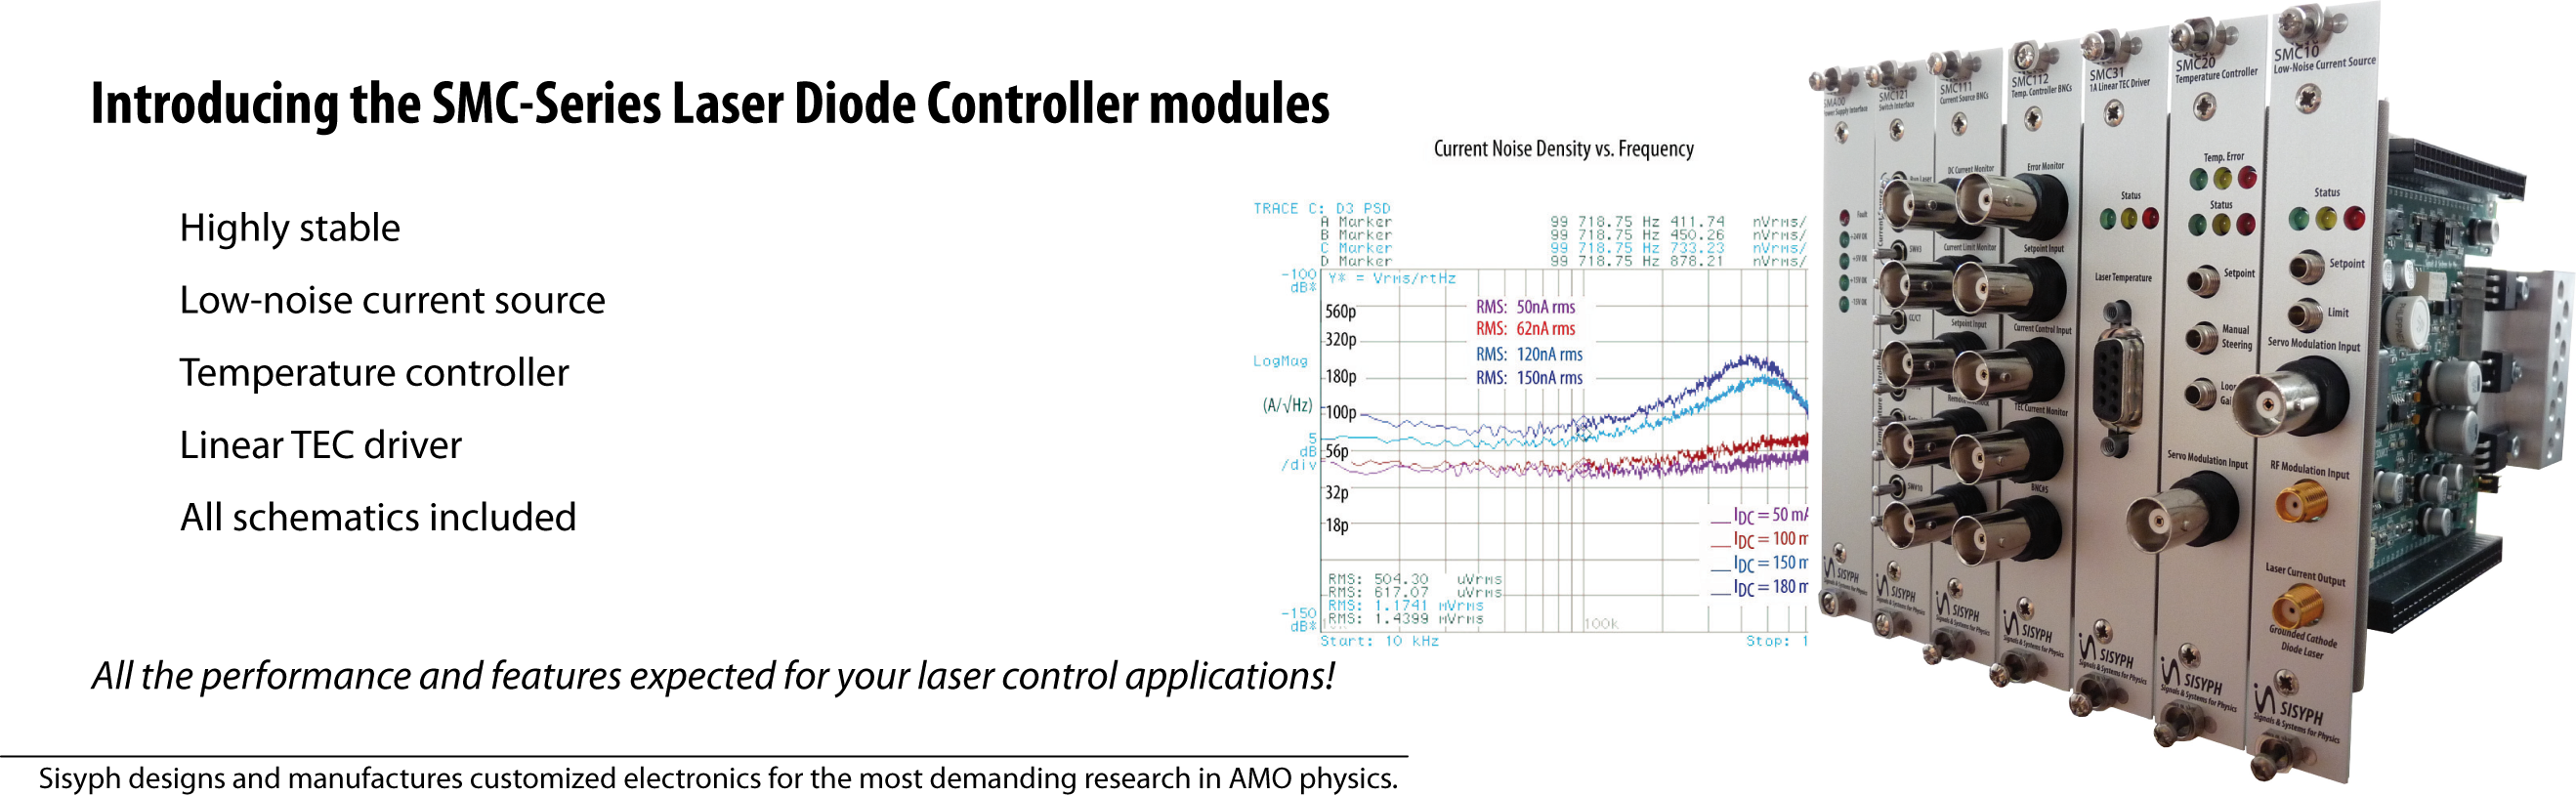 All the performance and features expected for your laser control applications!